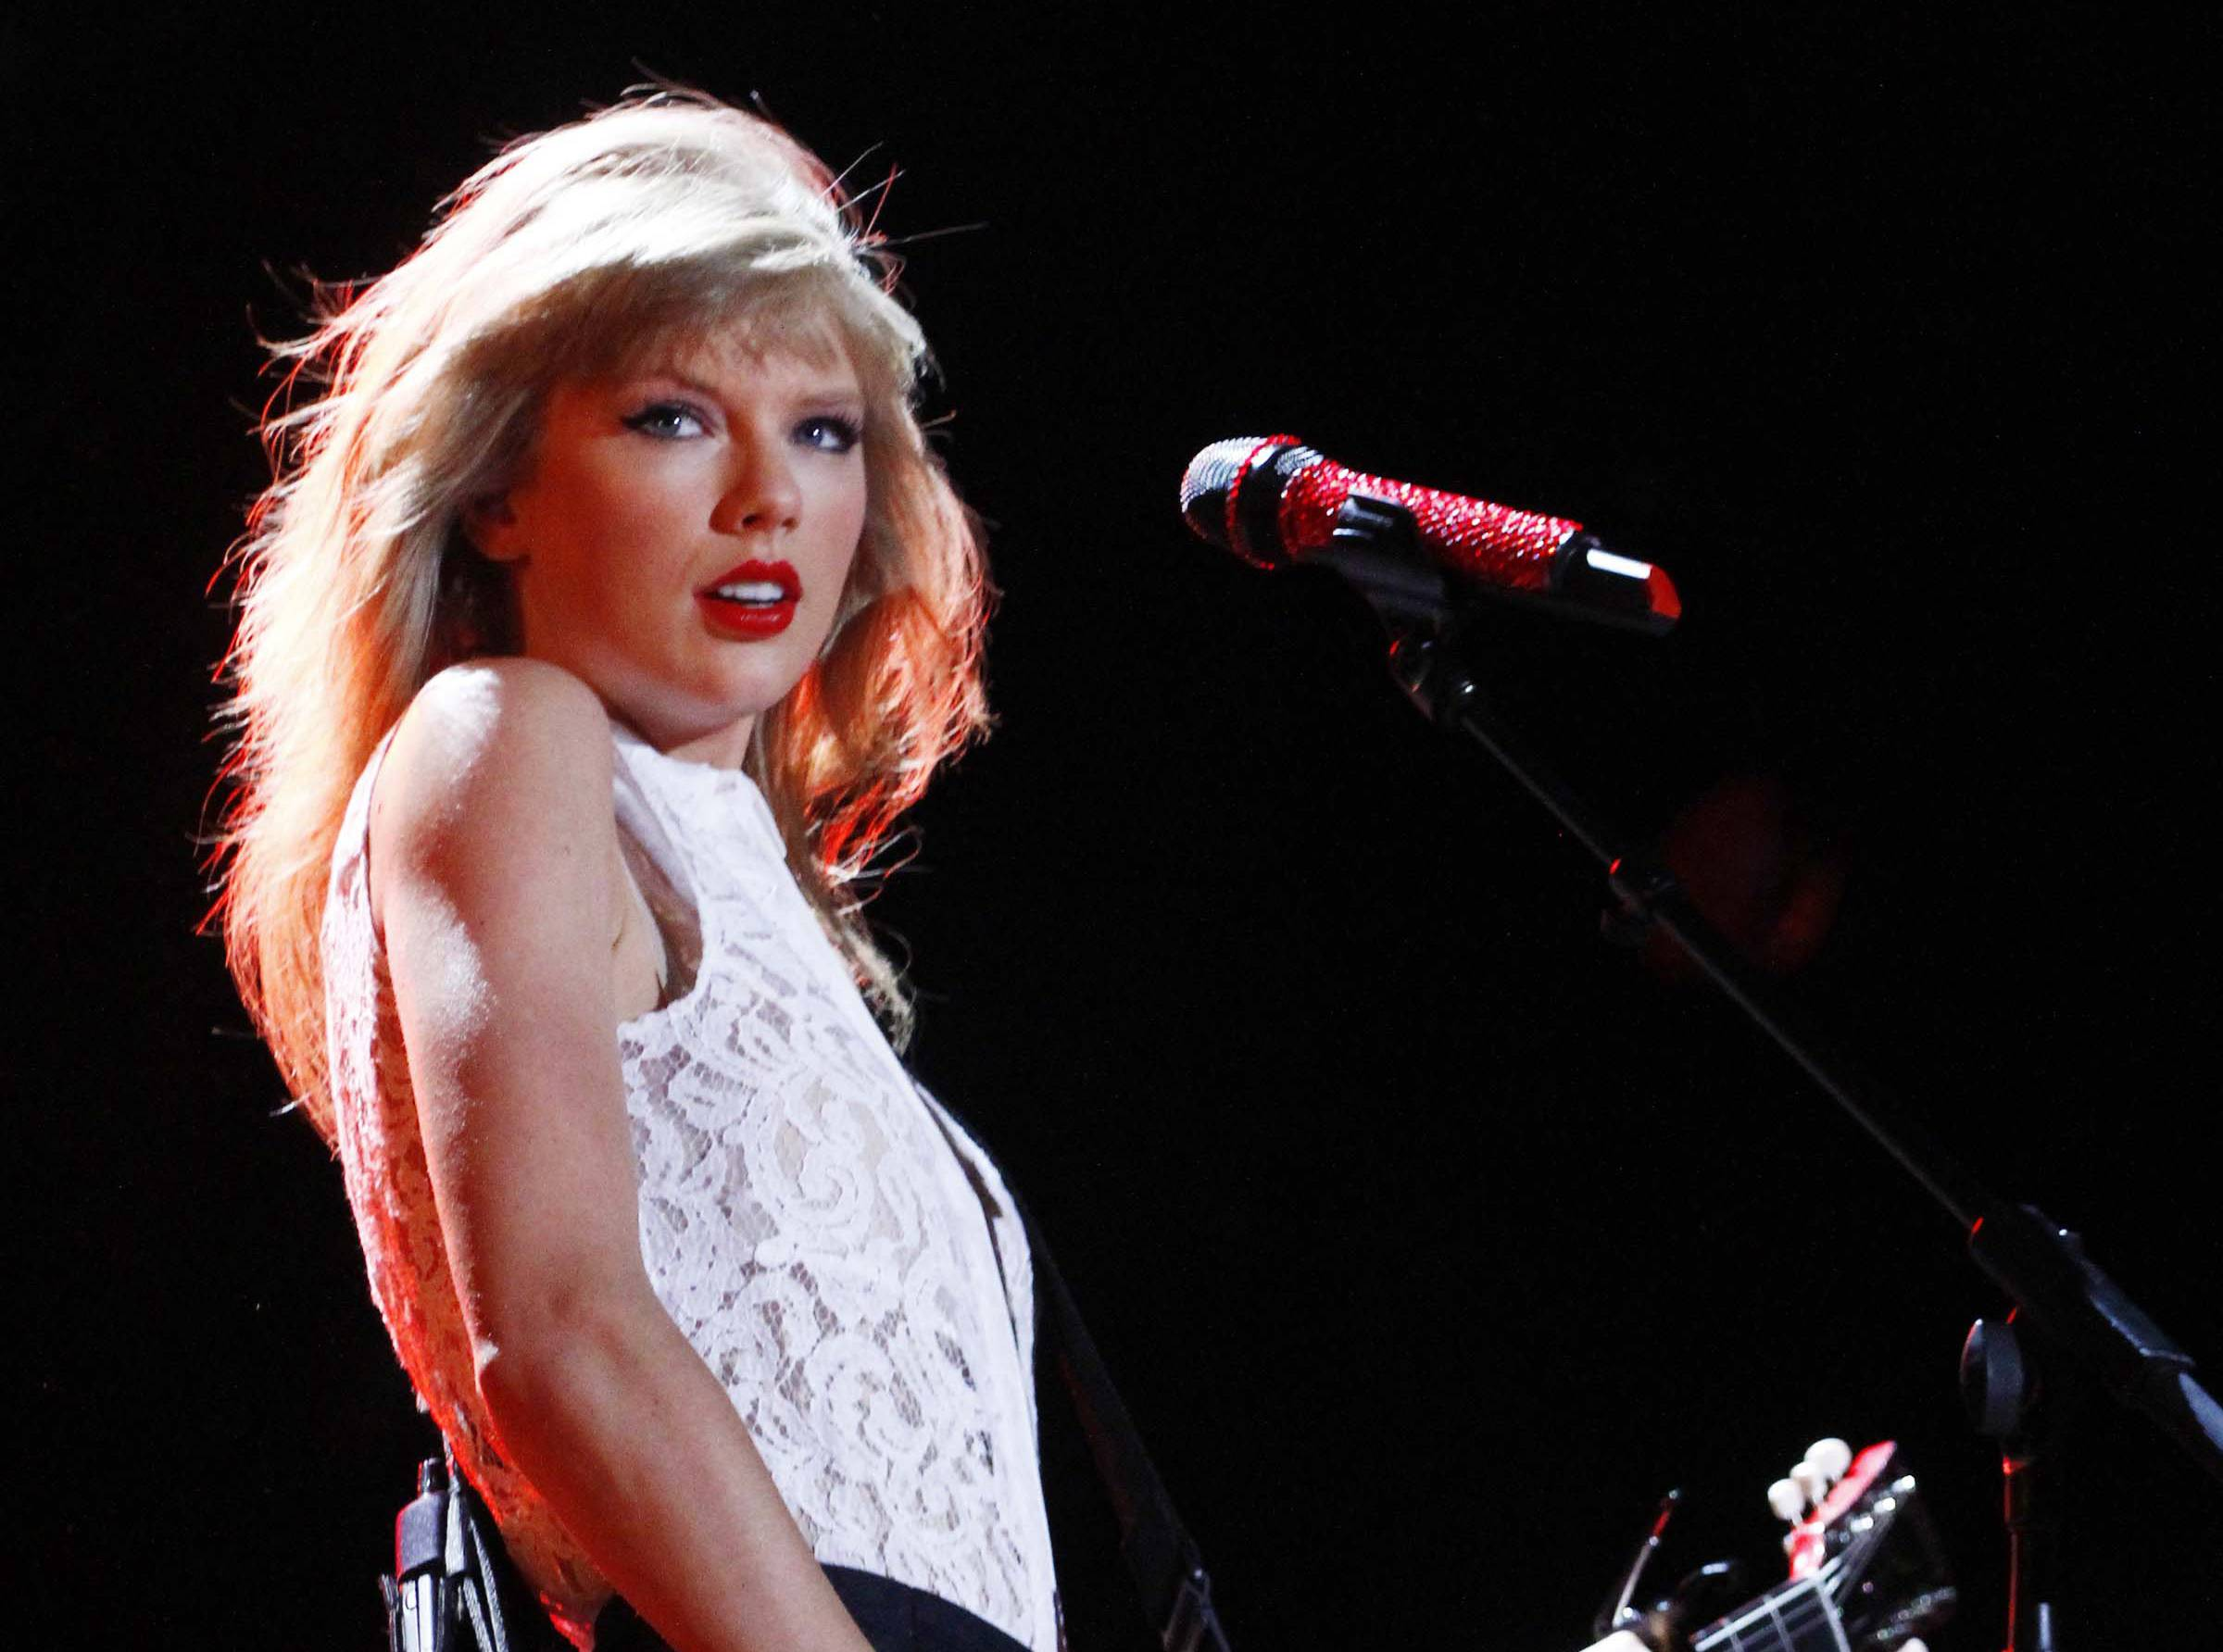 Taylor Swift joins the star-studded lineup for this year's iHeartRadio Music Festival in Las Vegas in September, Clear Channel announced Wednesday.